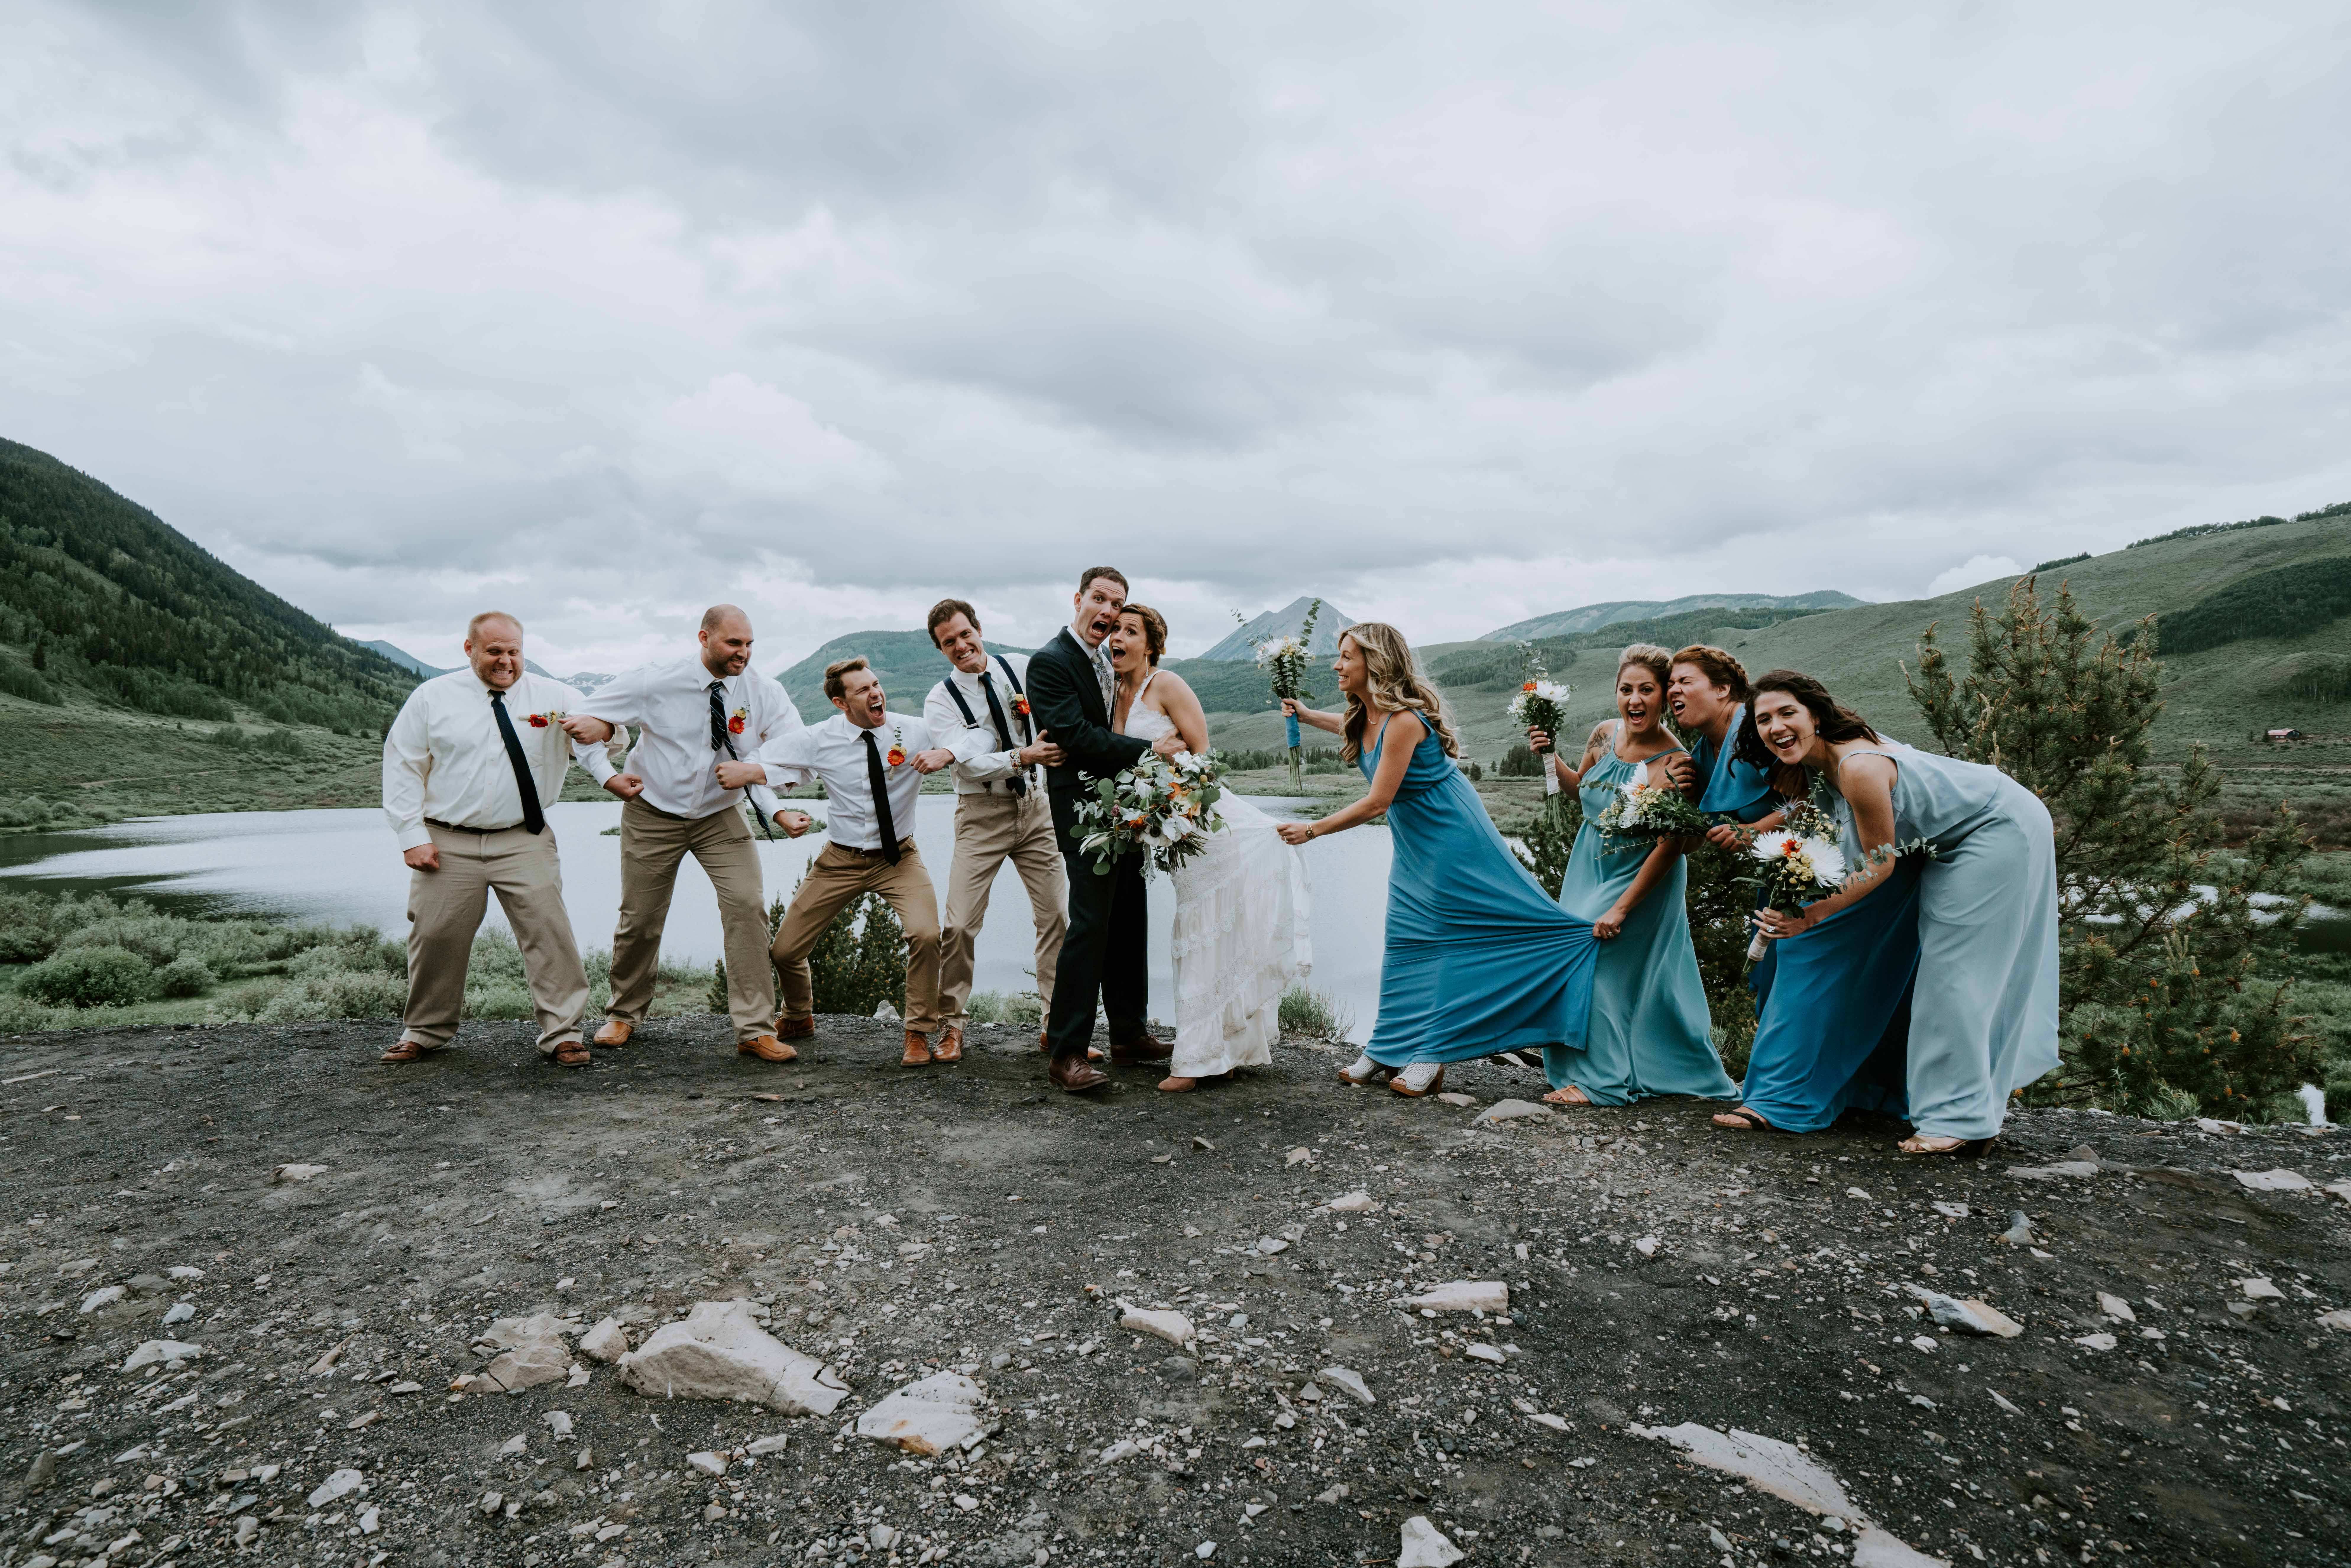 Laura_Alexe_Wedding_Crested_Butte_MegONeillPhotography__180616_135